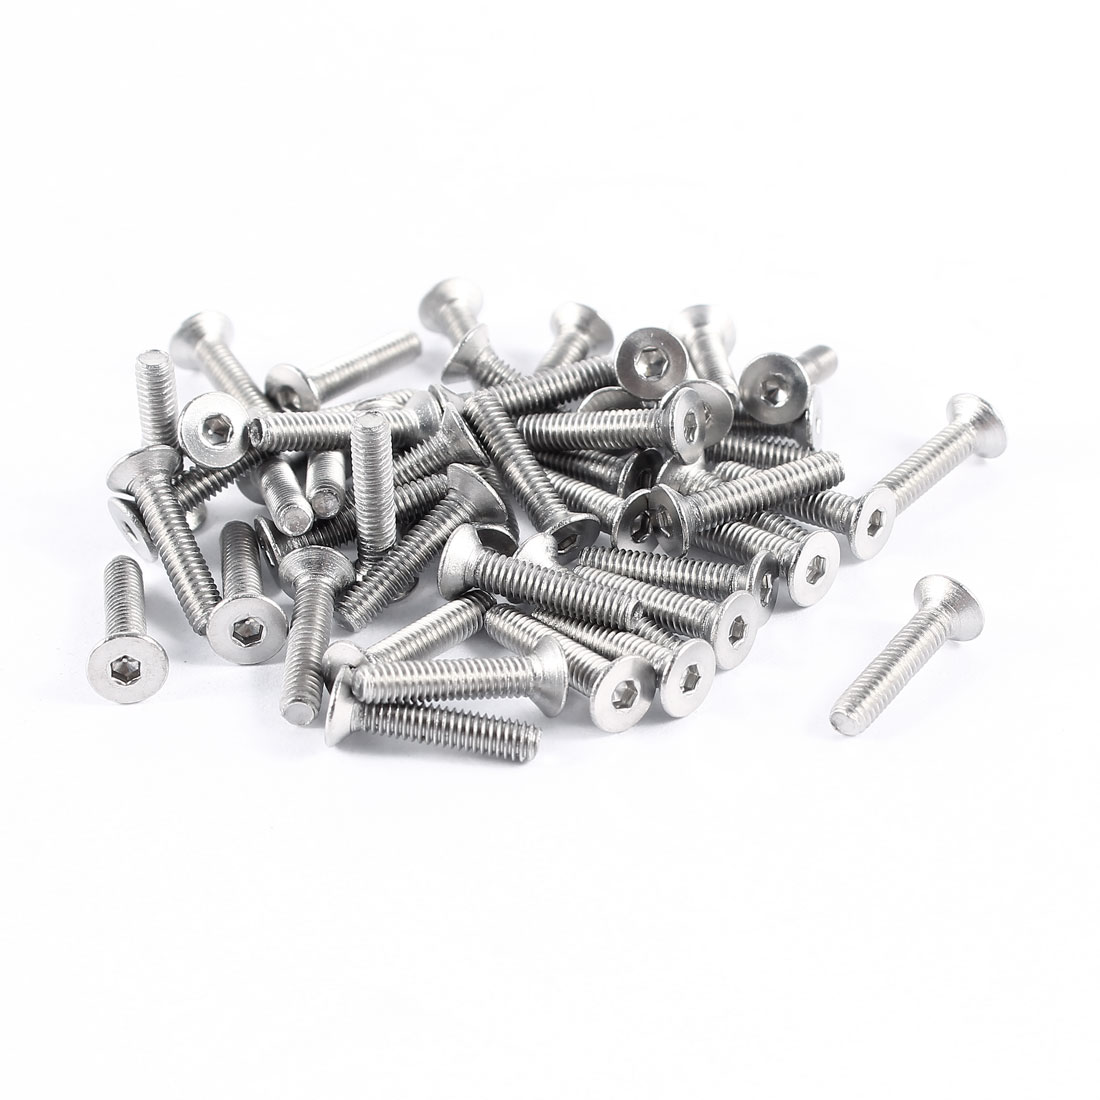 50 Pcs 304HC Stainless Steel Countersunk Hex Flat Head Bolts Screws M2.5x12mm